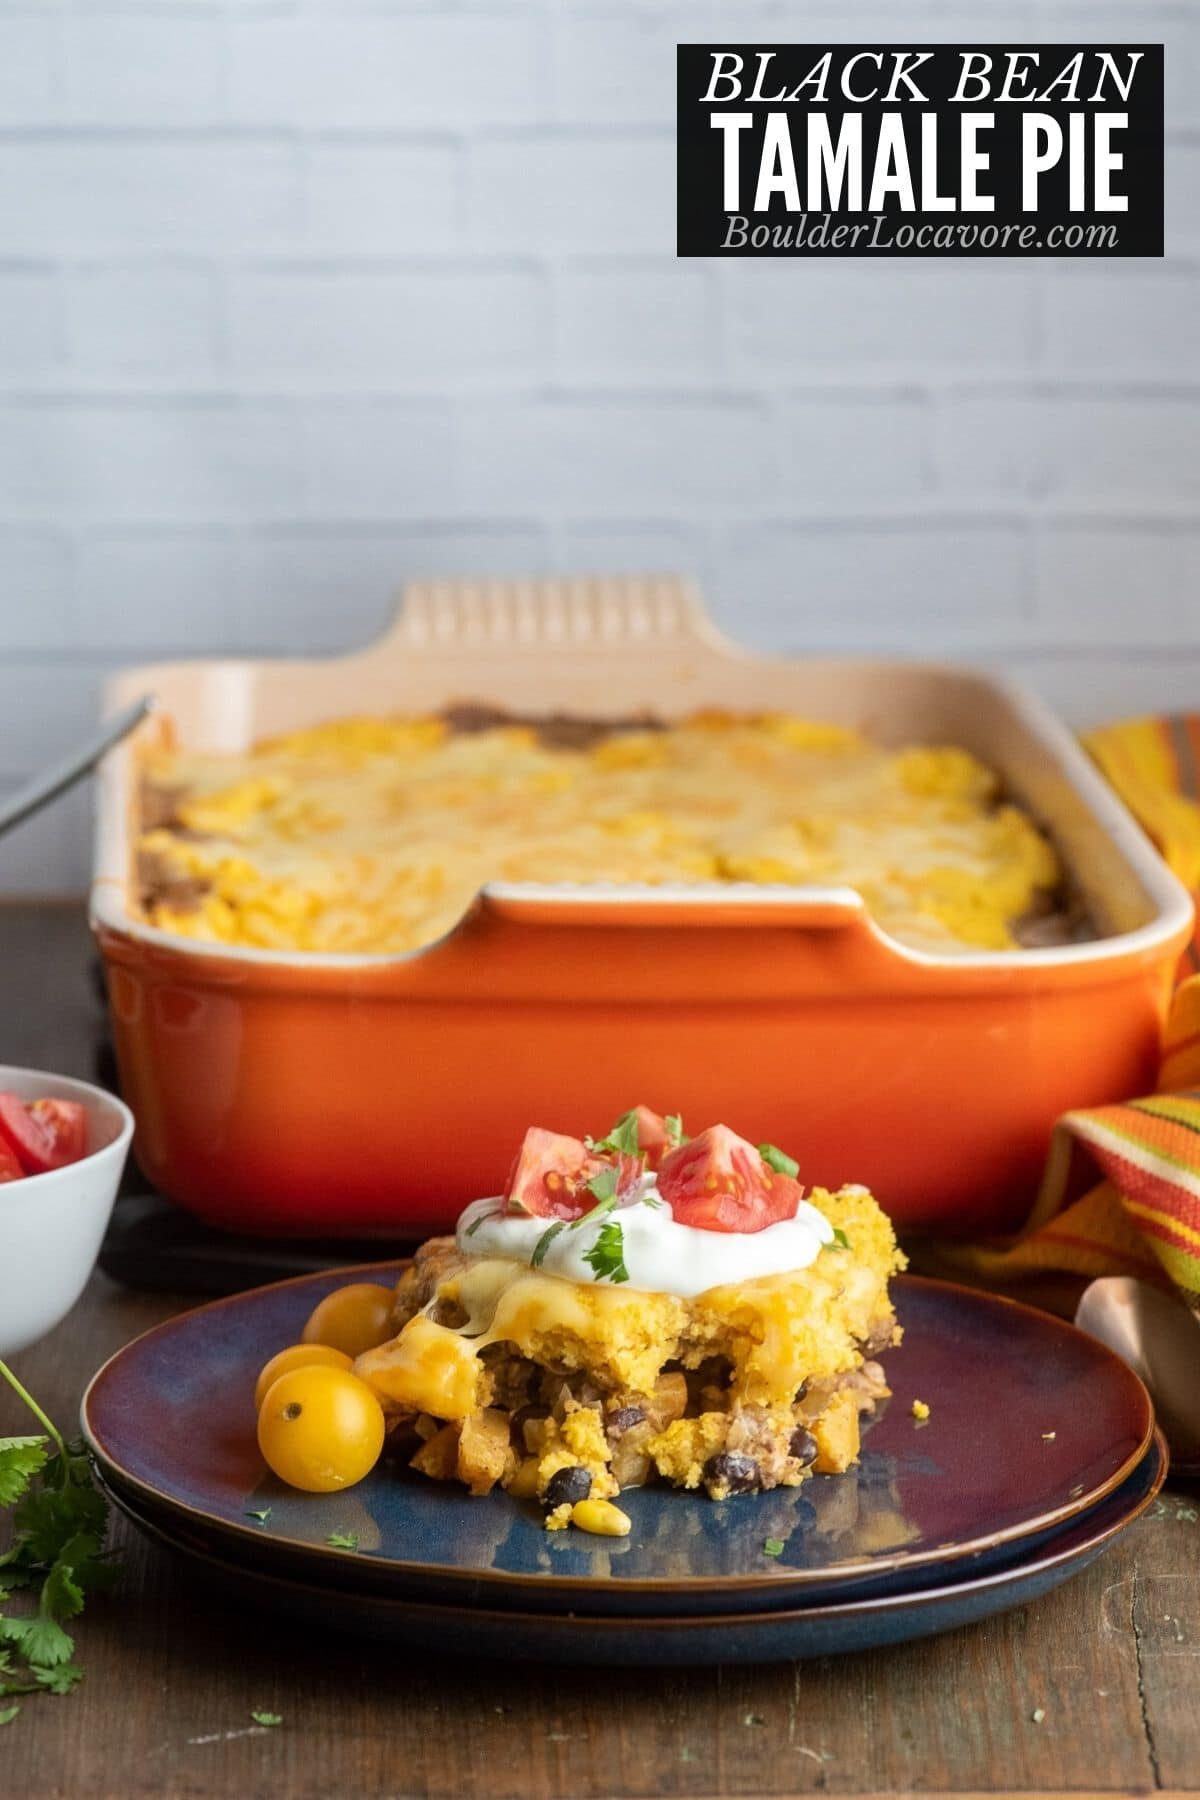 serving of tamale pie on plate